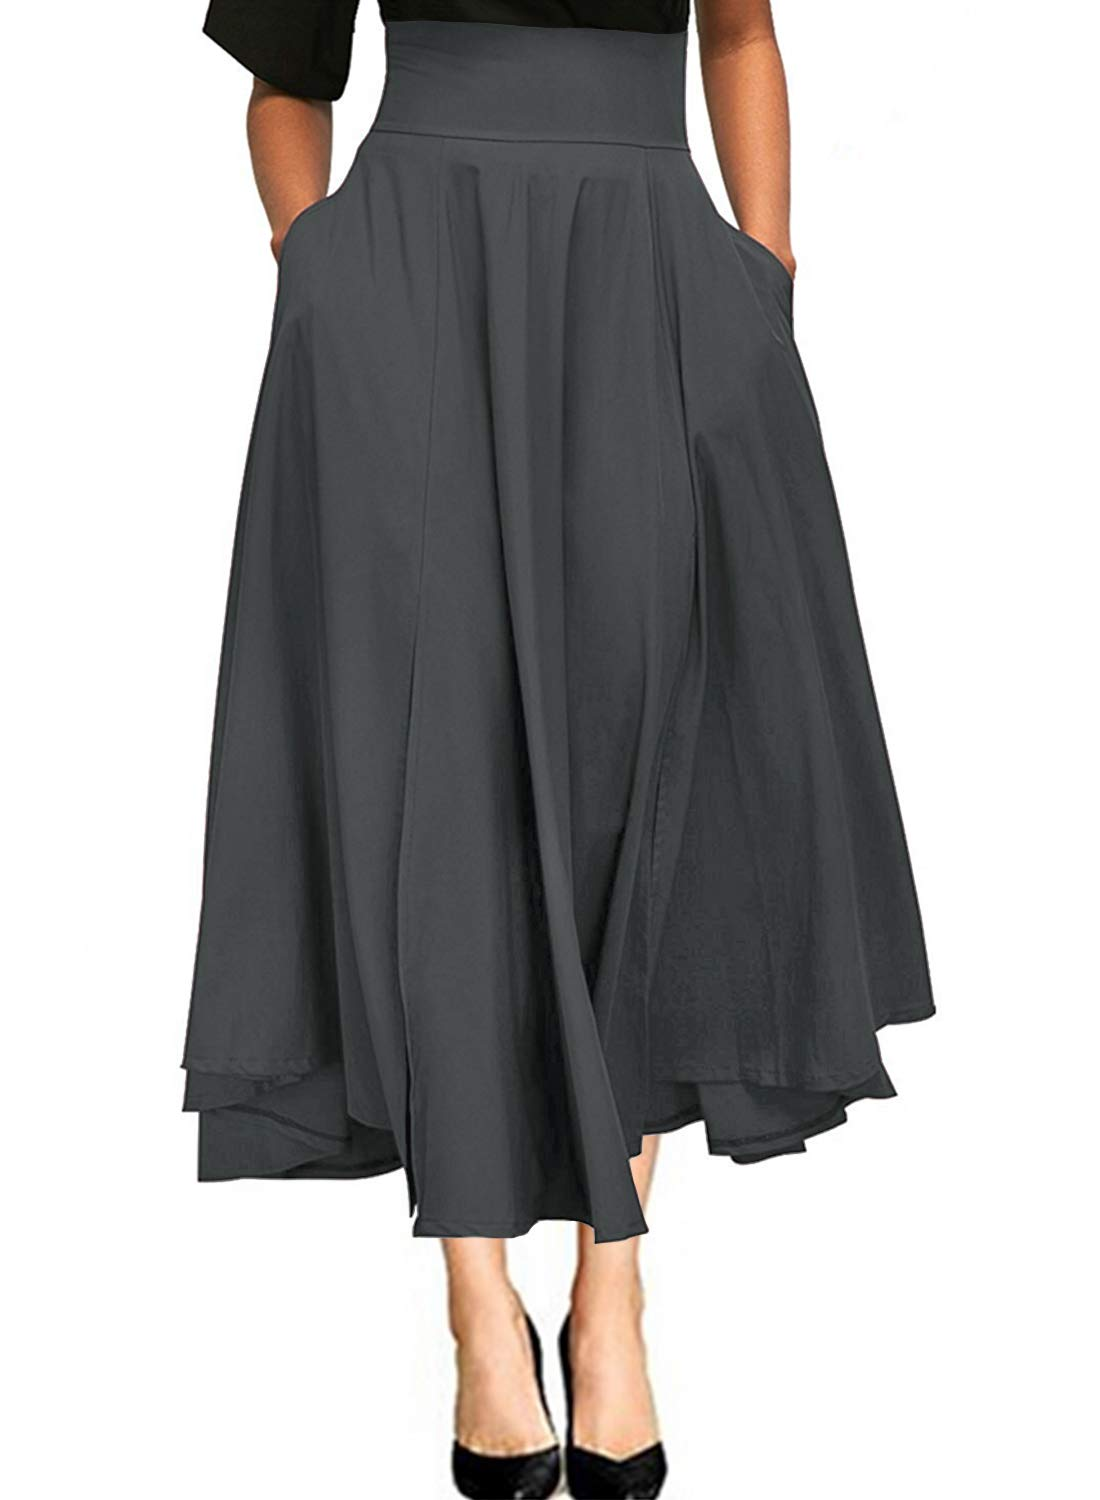 Gray Maxi Skirts for Women Vintage Summer High Waisted A-line Long Flowy Skirt